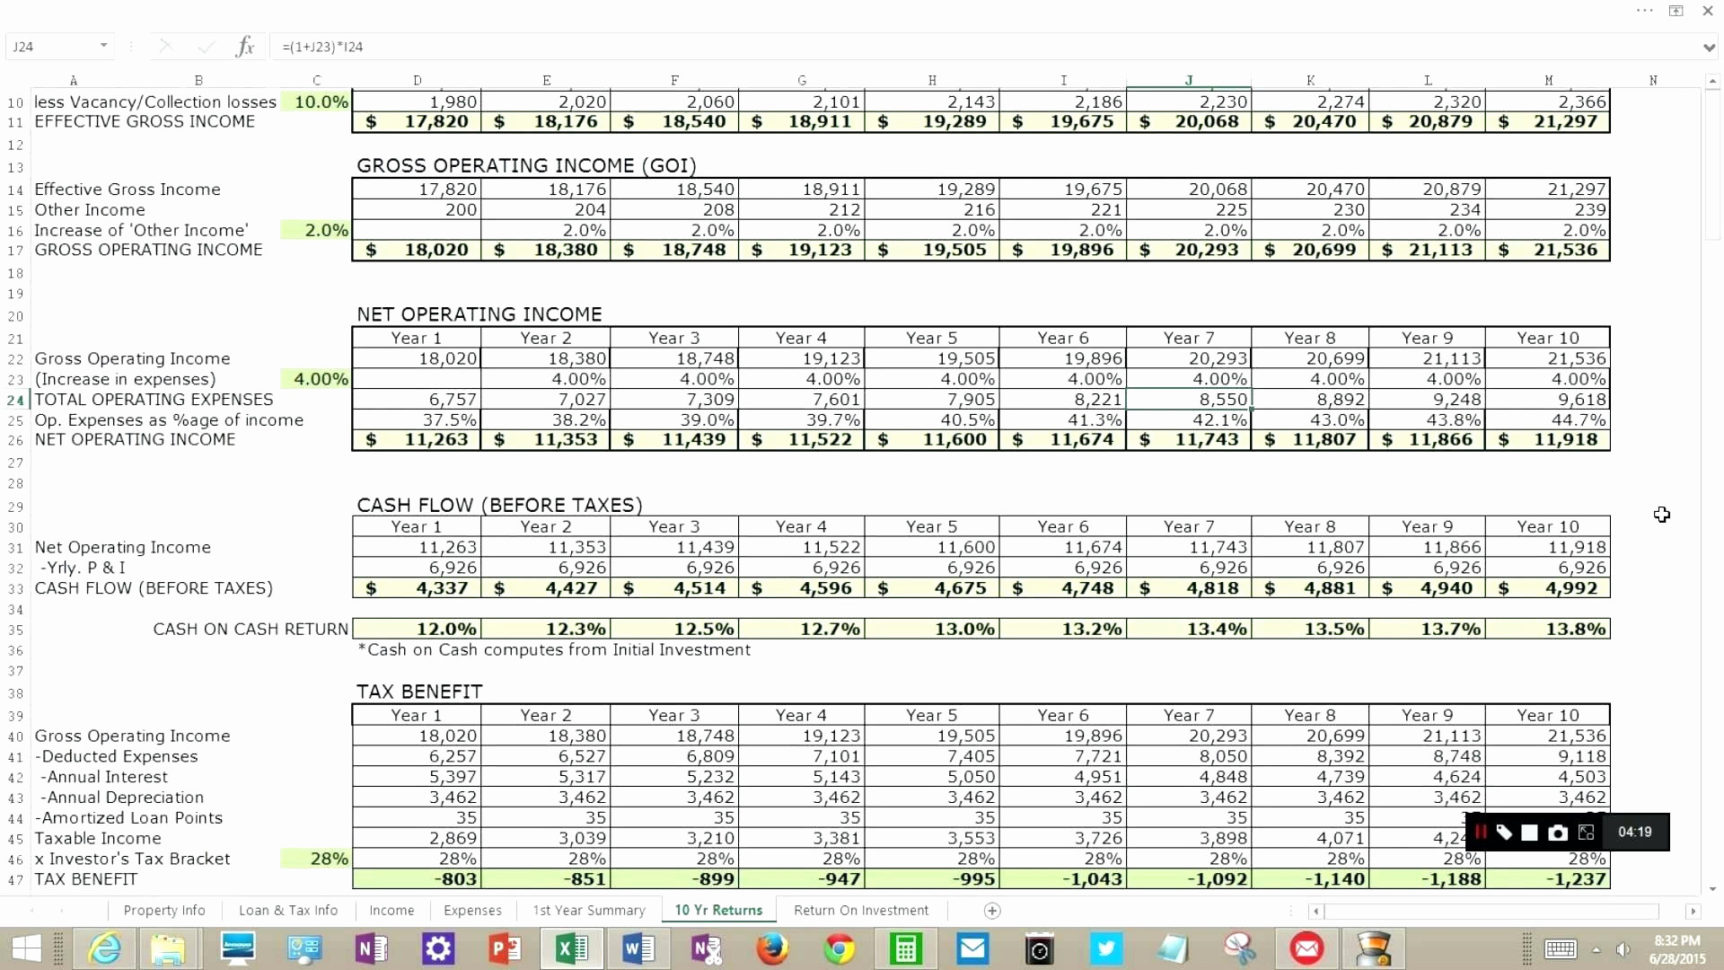 Pile Design Spreadsheet Free Download For Sheet Pile Design Spreadsheet  Islamopedia